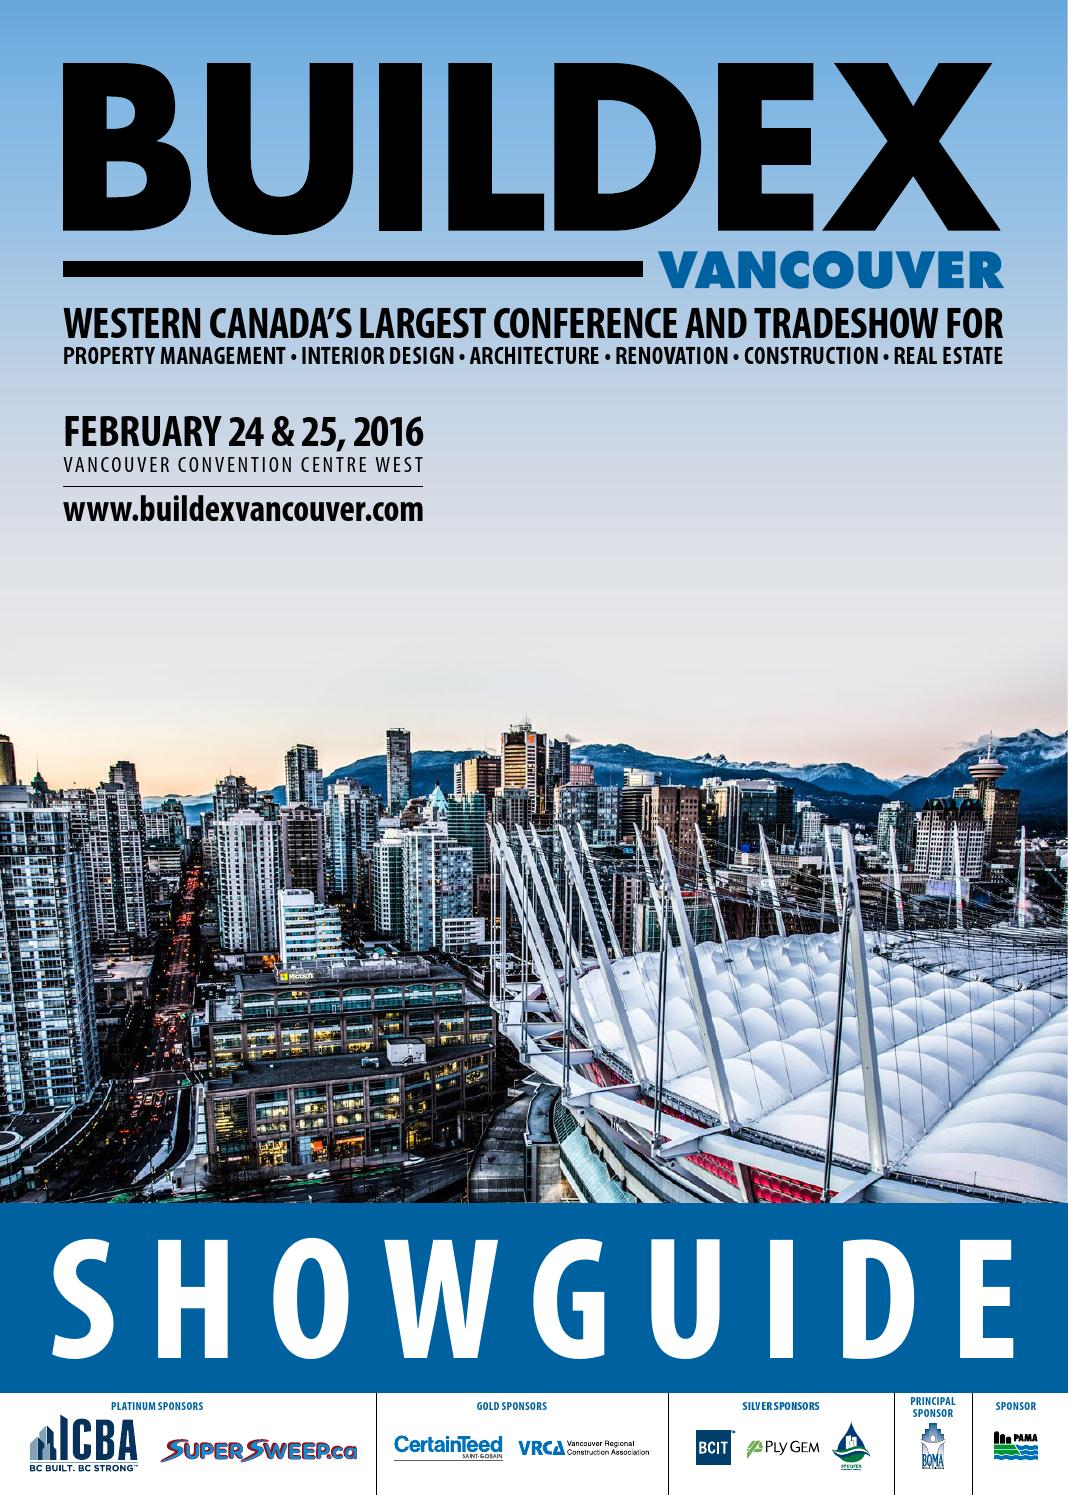 Buildex vancouver 2016 showguide by informa vancouver issuu for Interior design show vancouver 2016